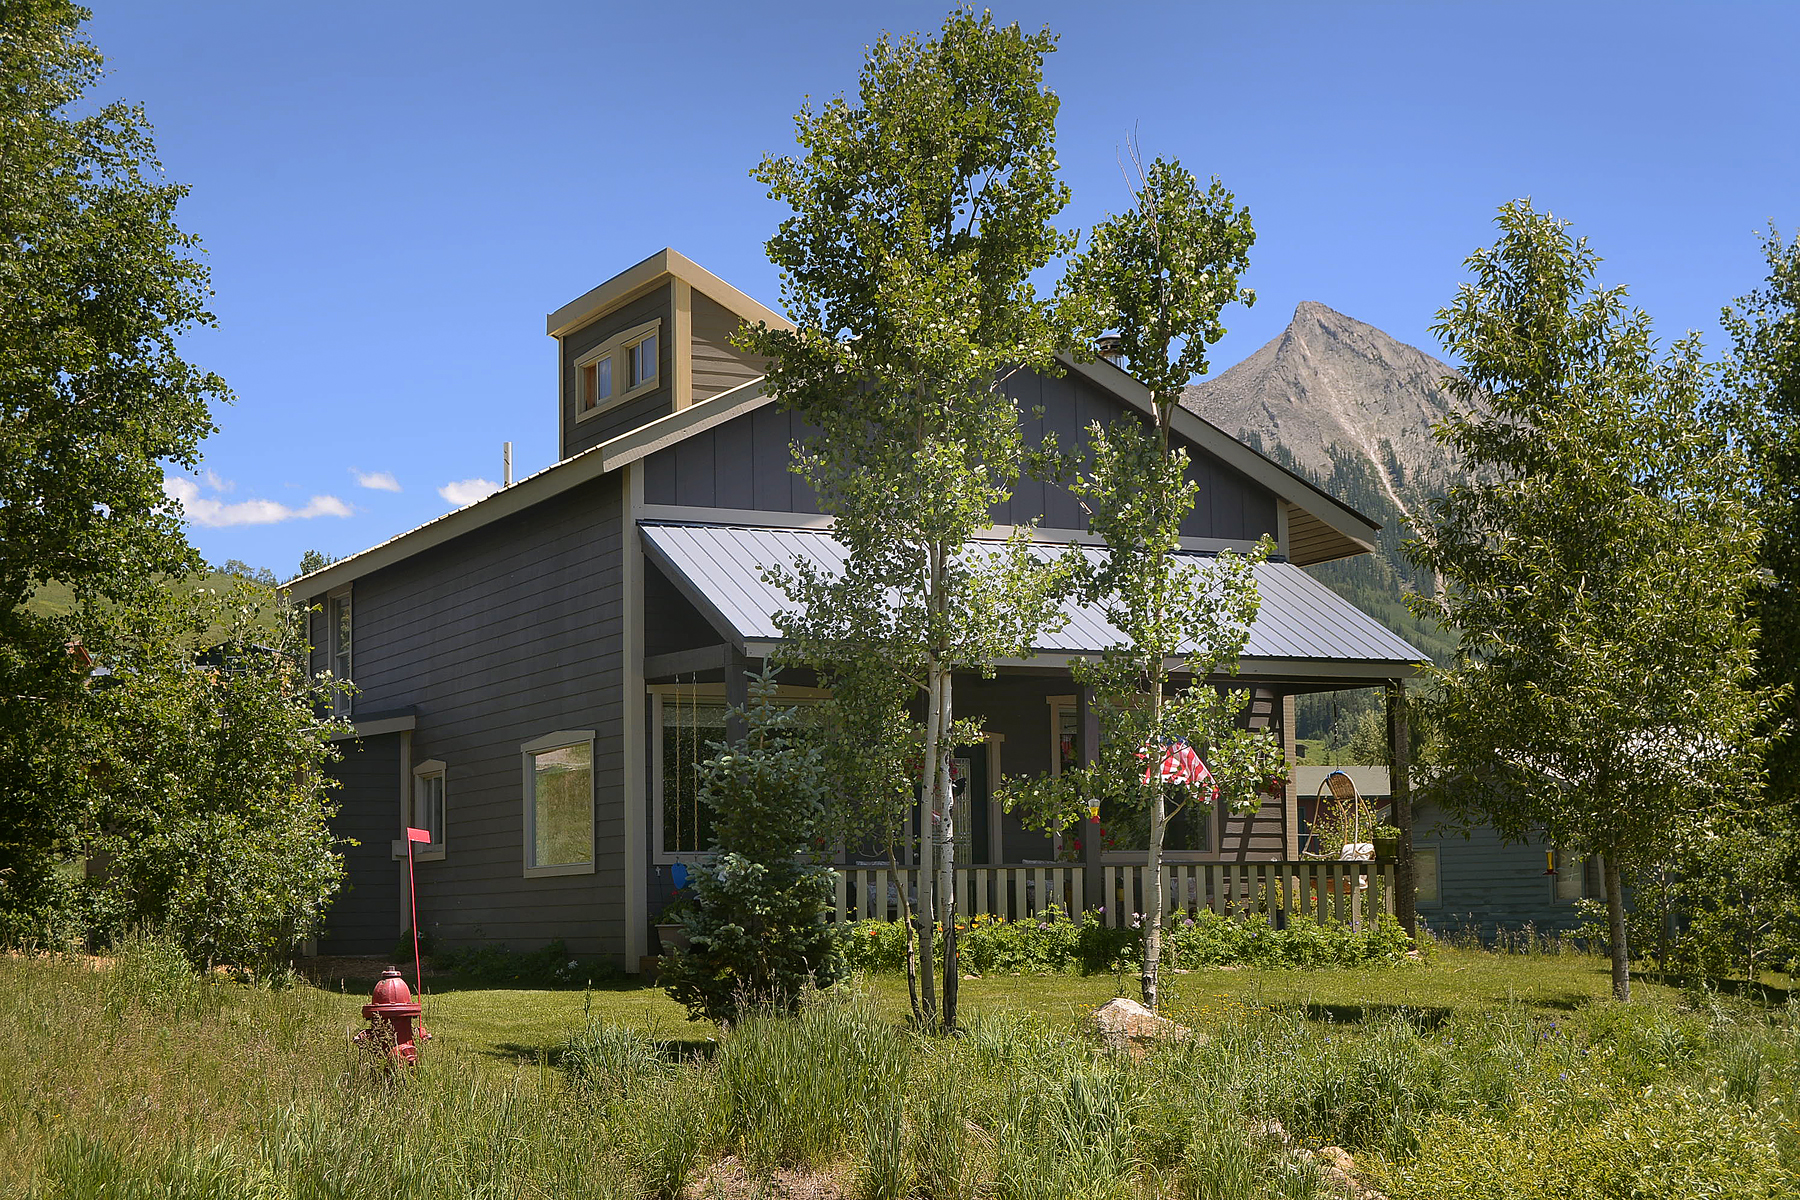 Maison unifamiliale pour l Vente à Great Home Close to Ski Slopes 30 Paradise Road Mount Crested Butte, Colorado, 81225 États-Unis